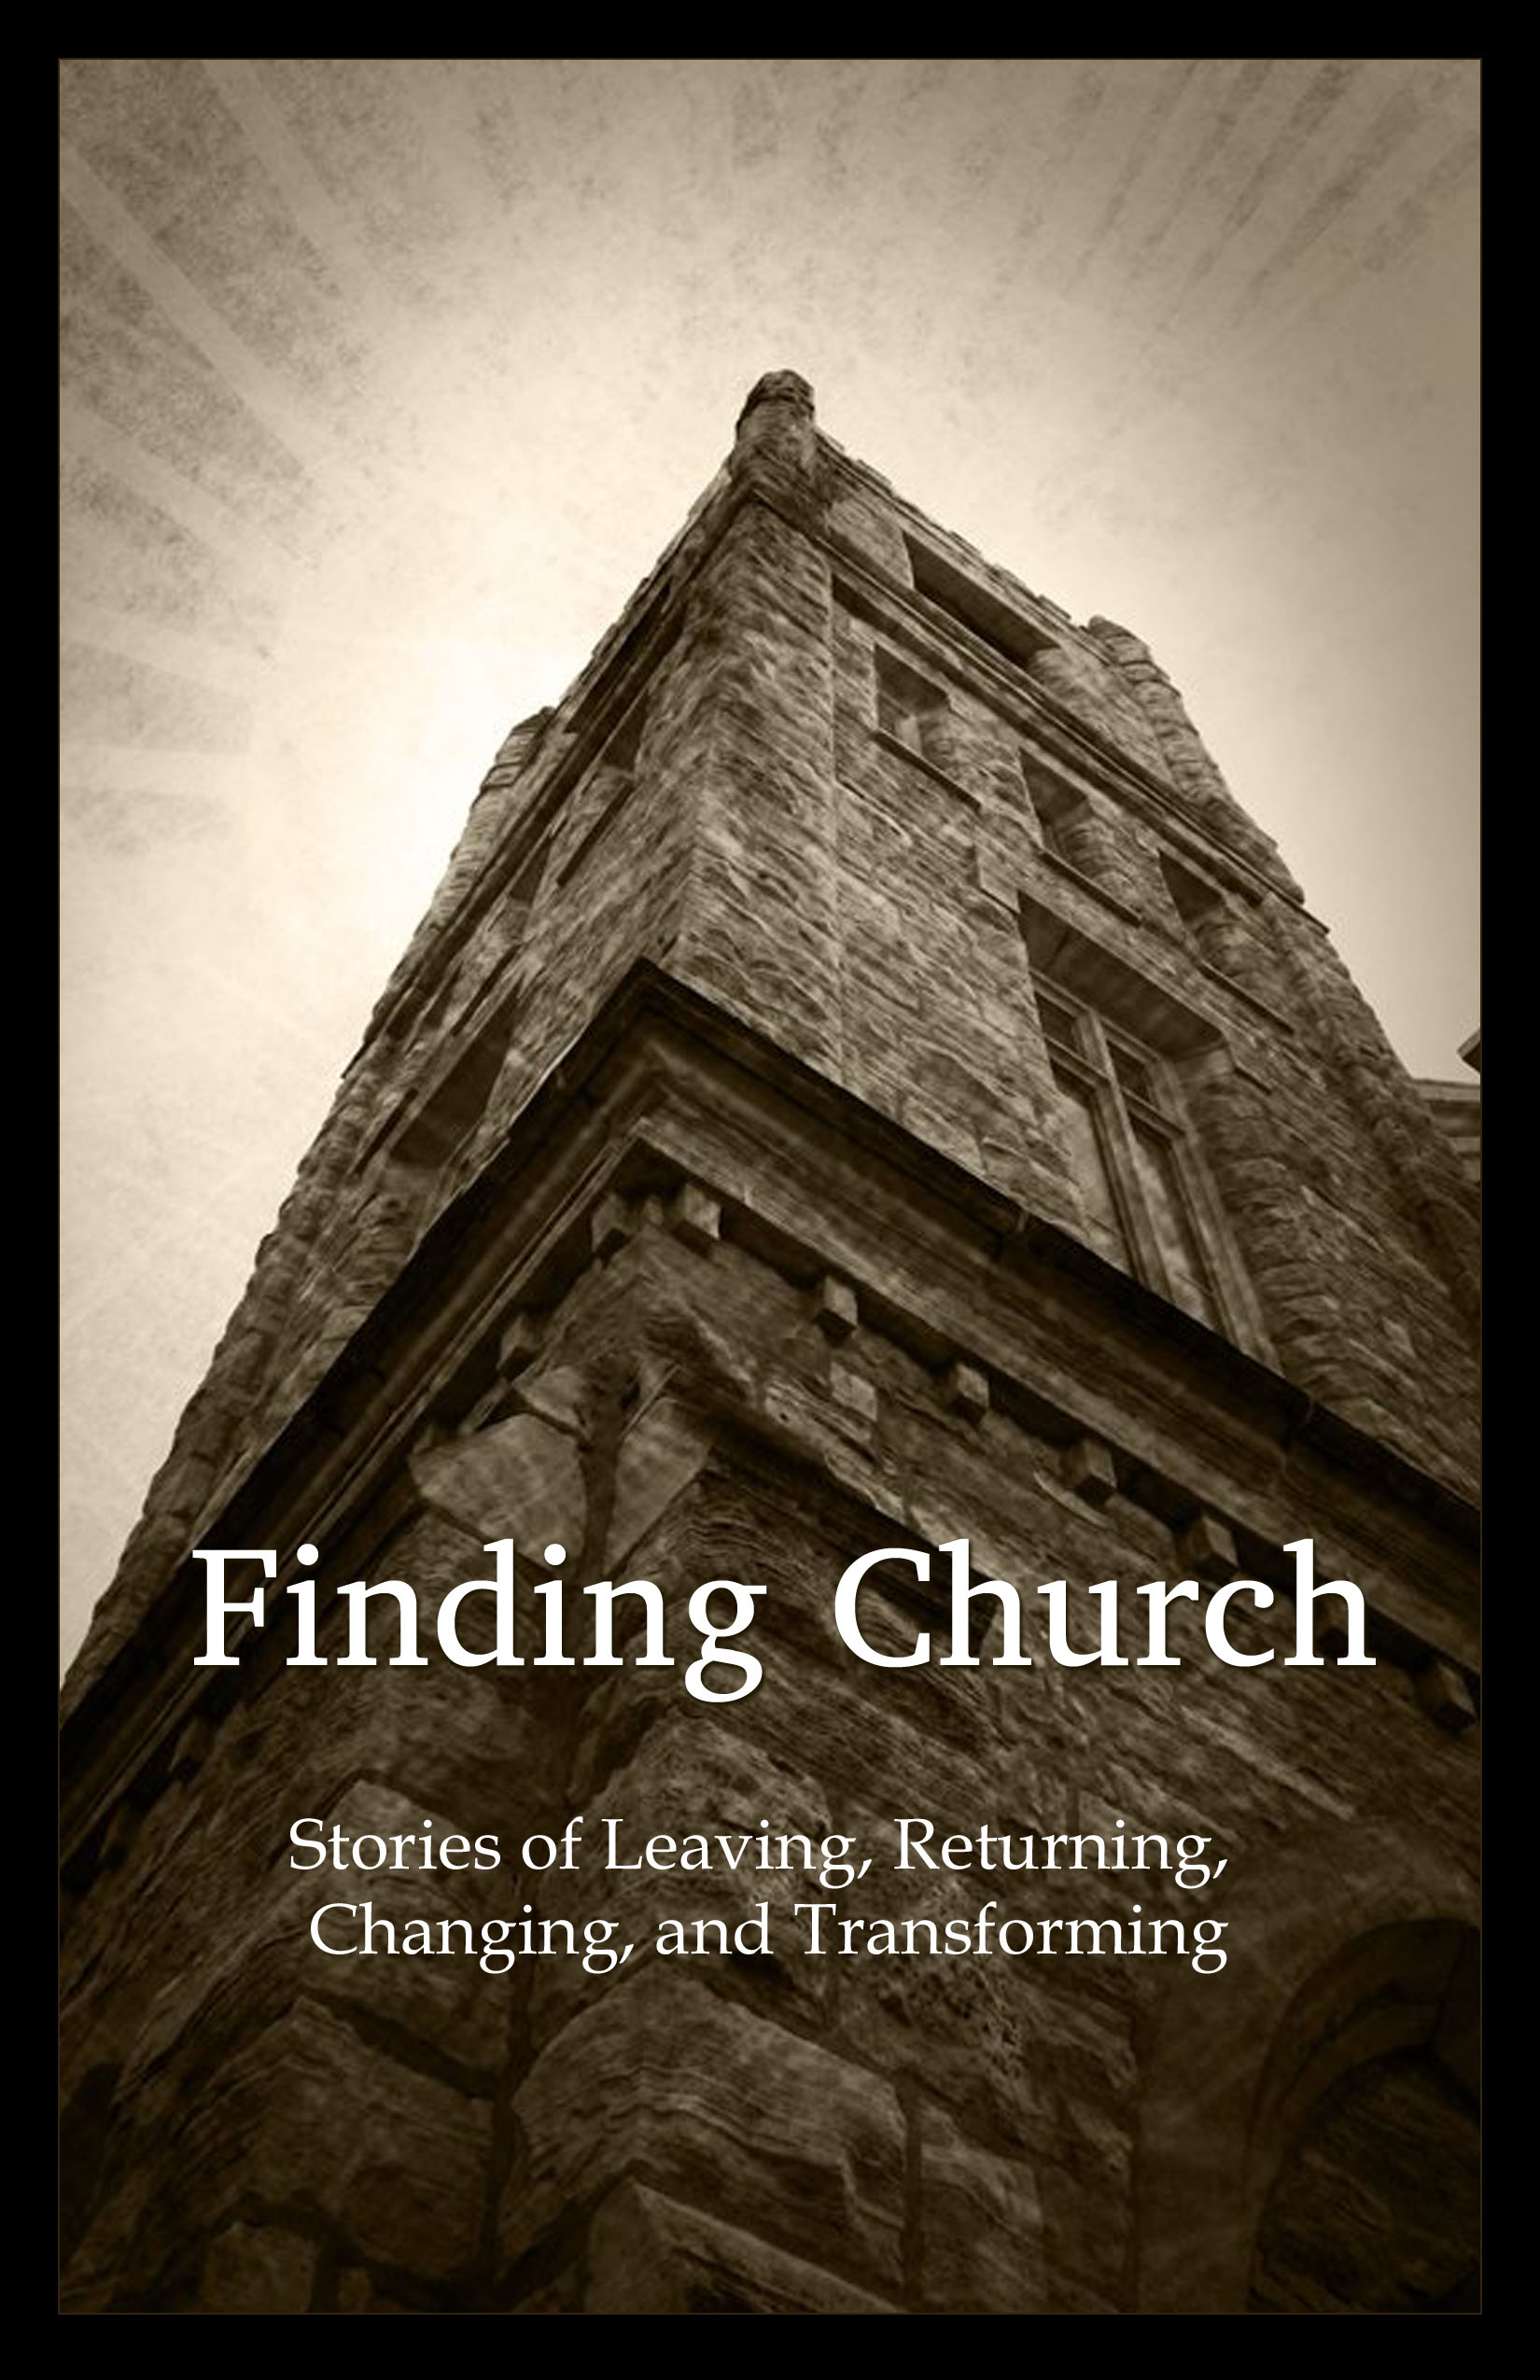 Finding Church Contributors